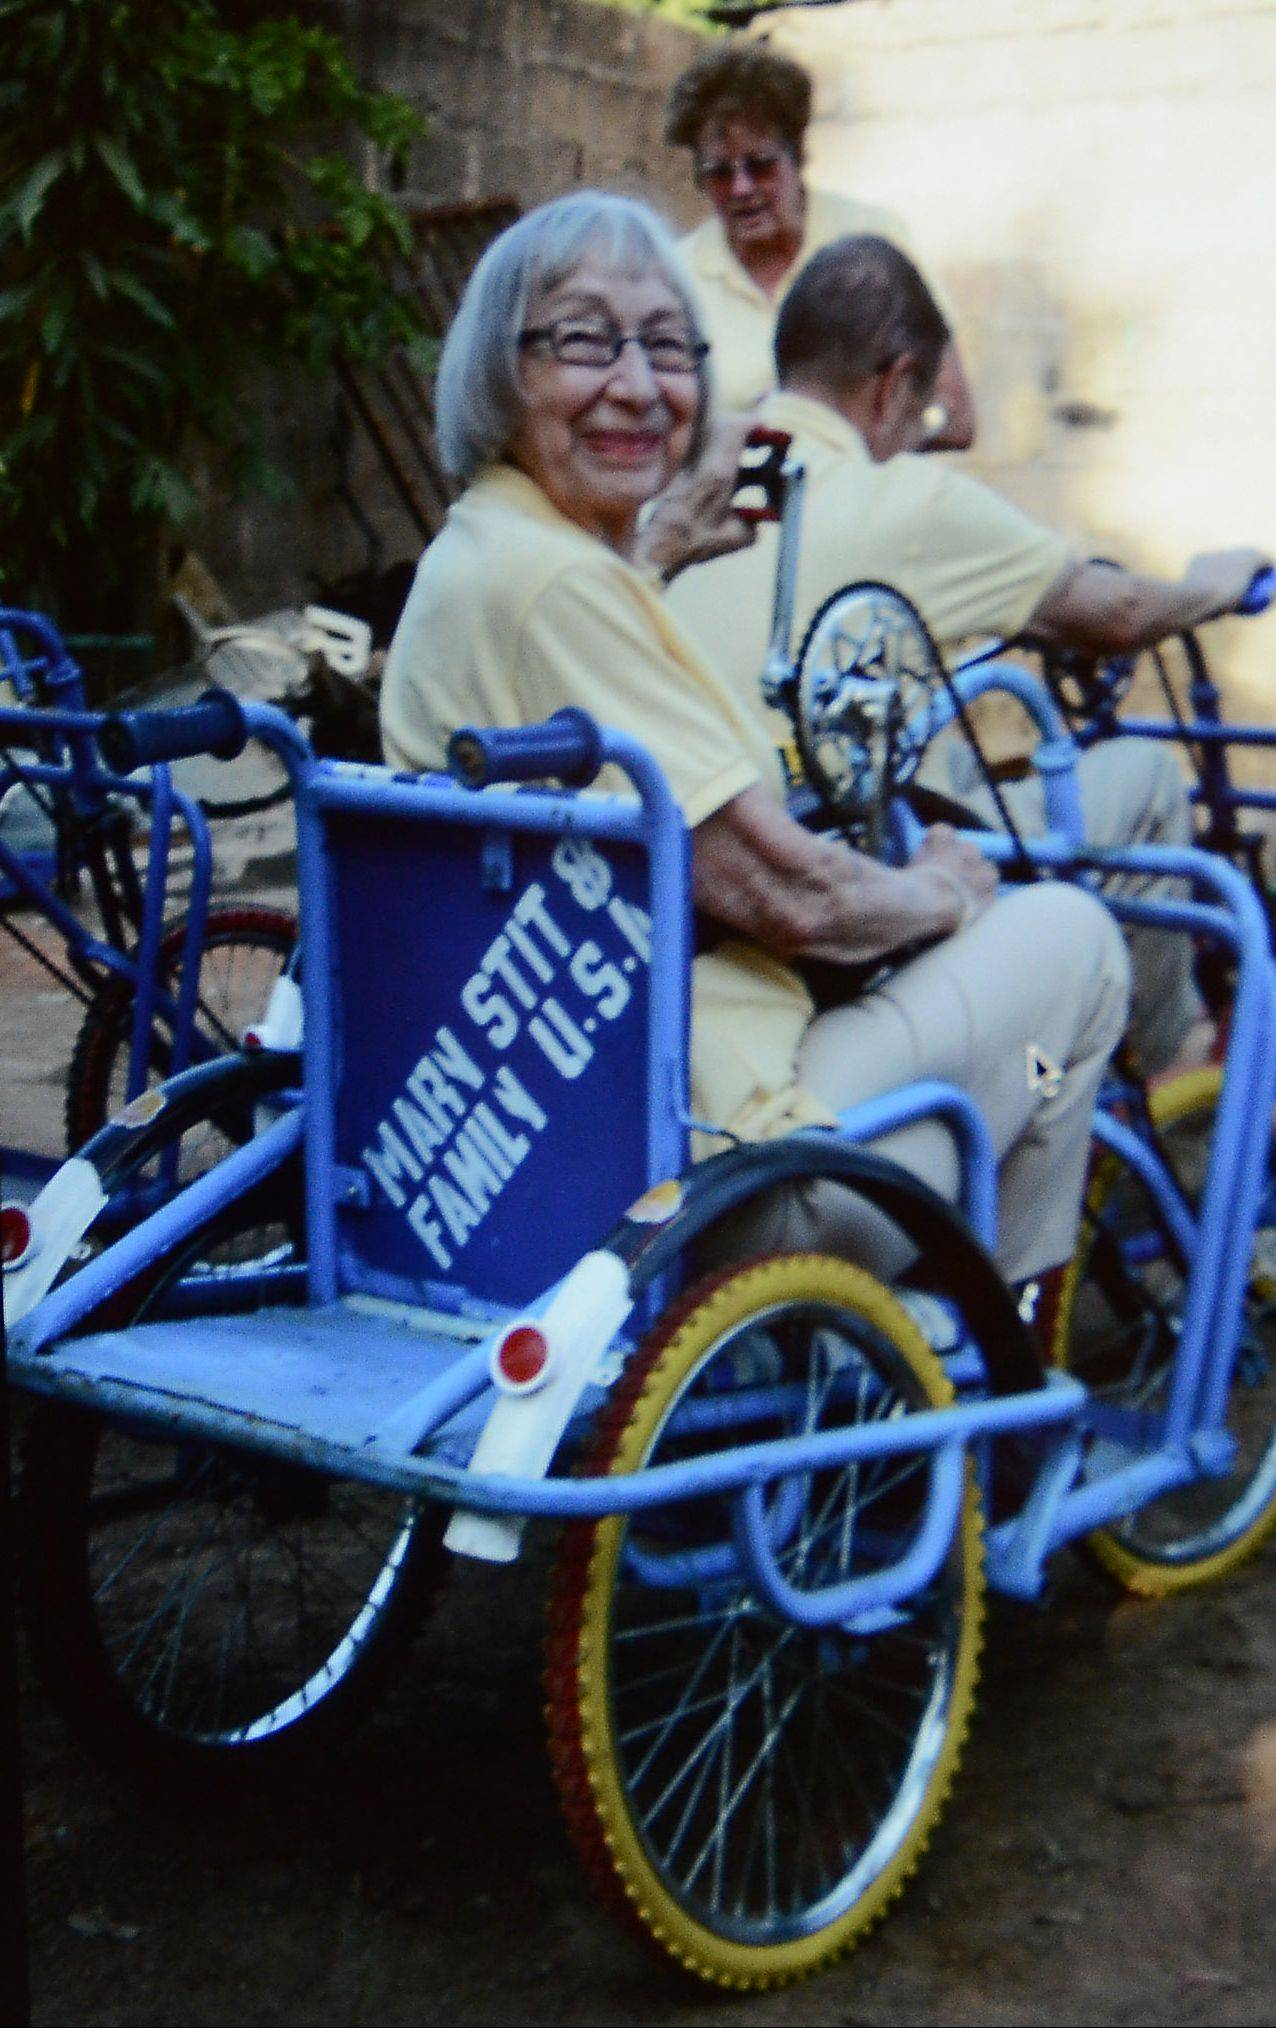 Stitt delivers a bicycle wheelchair to a polio survivor in Nigeria.